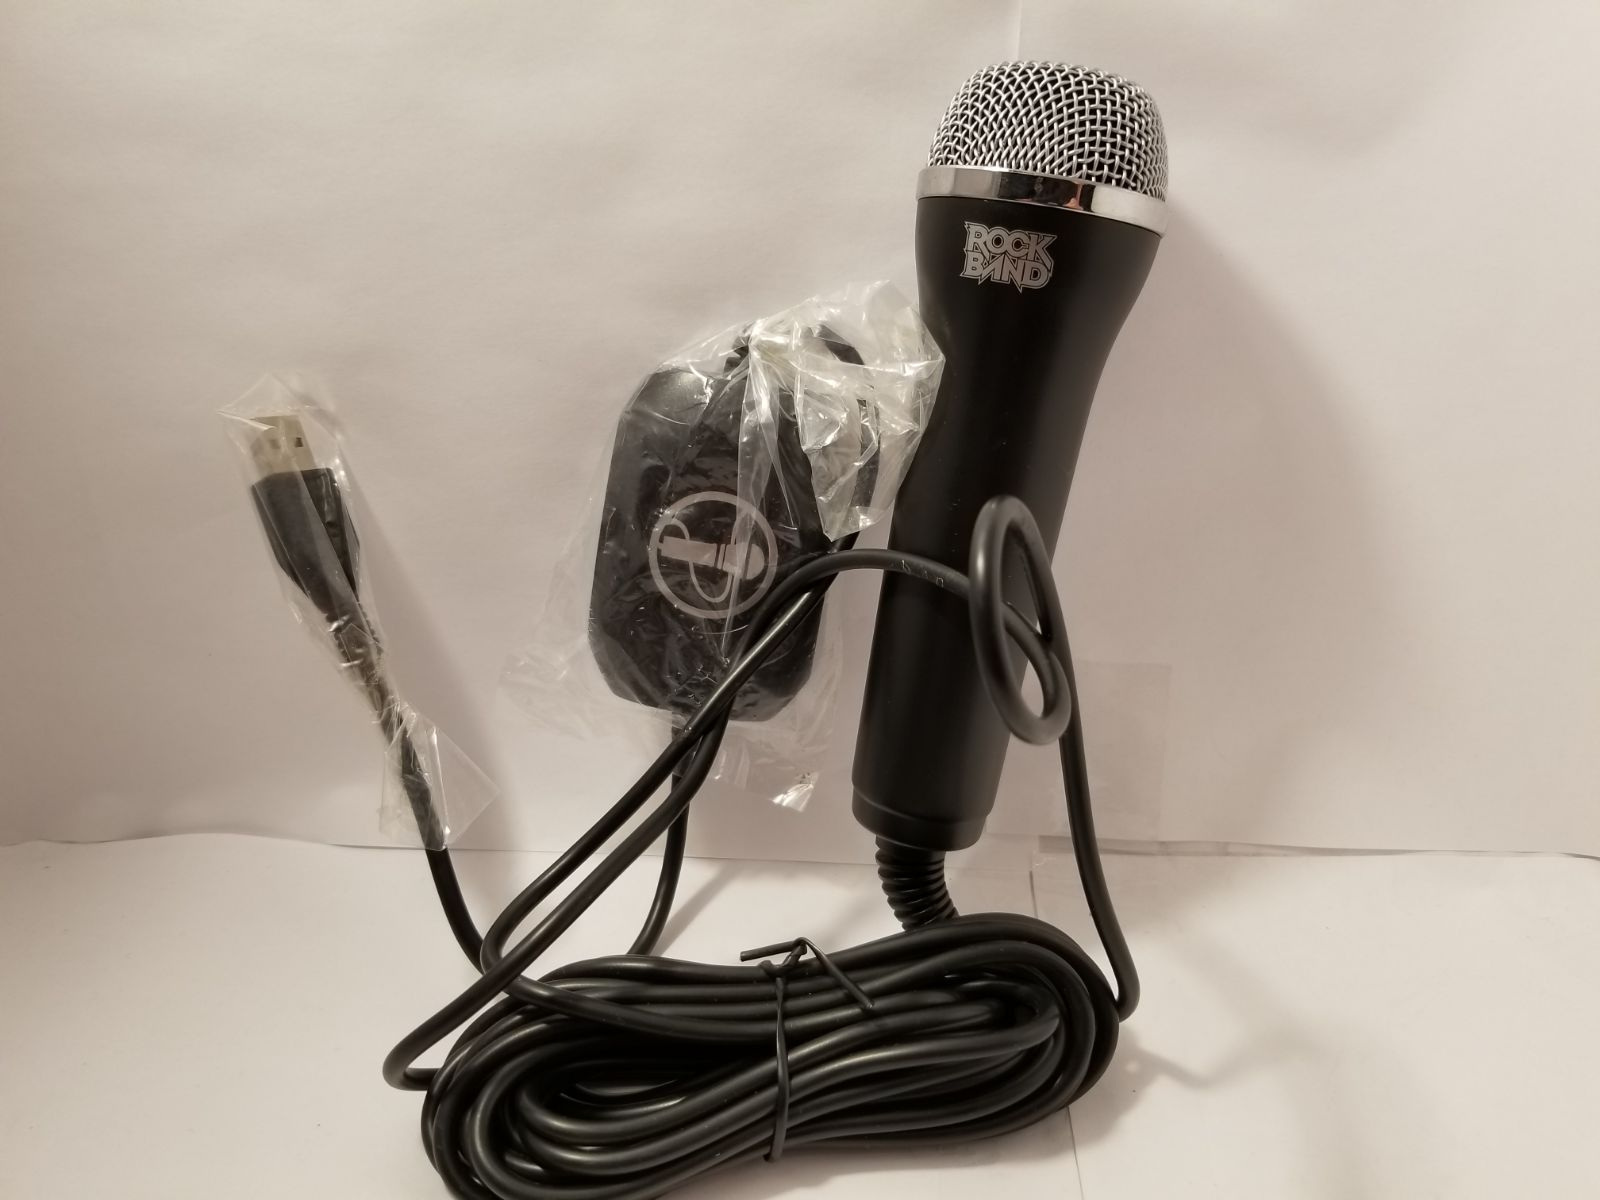 NEW rock band mic wired usb